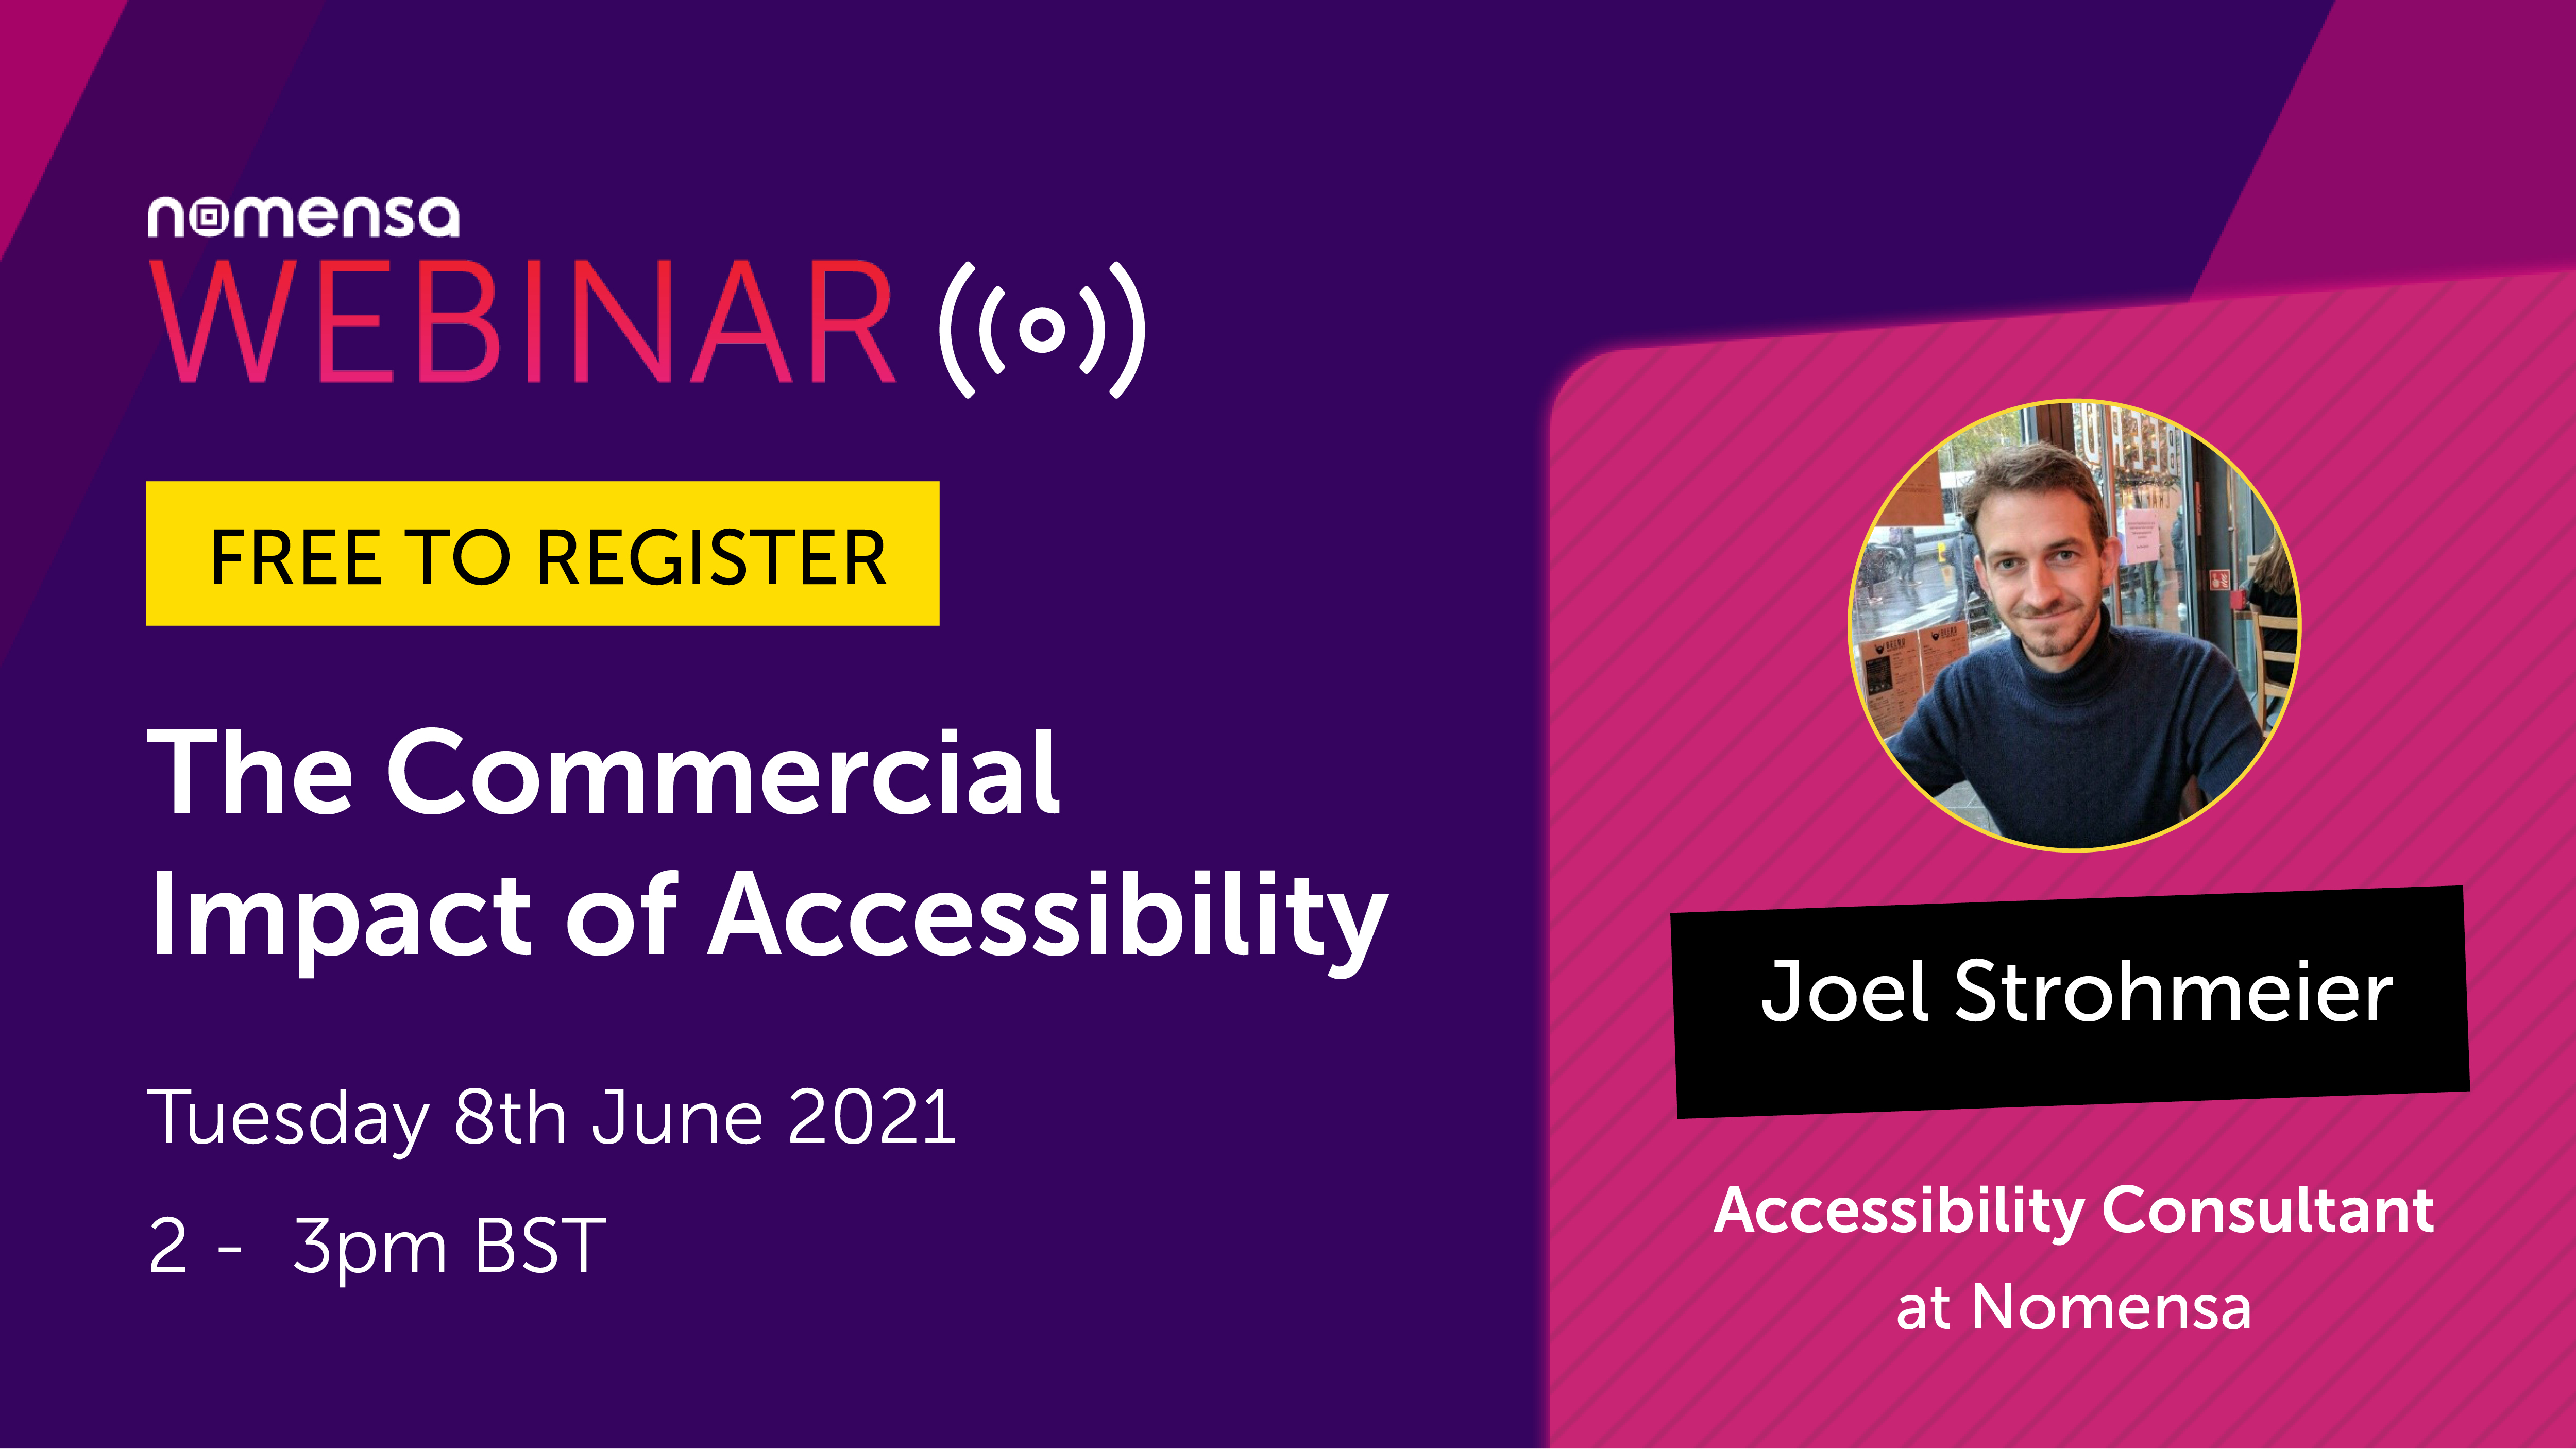 Free Nomensa webinar: The Commercial Impact of Accessibility with Joel Strohmeier, Accessibility Consultant, at 2pm BST on Tuesday 8th June